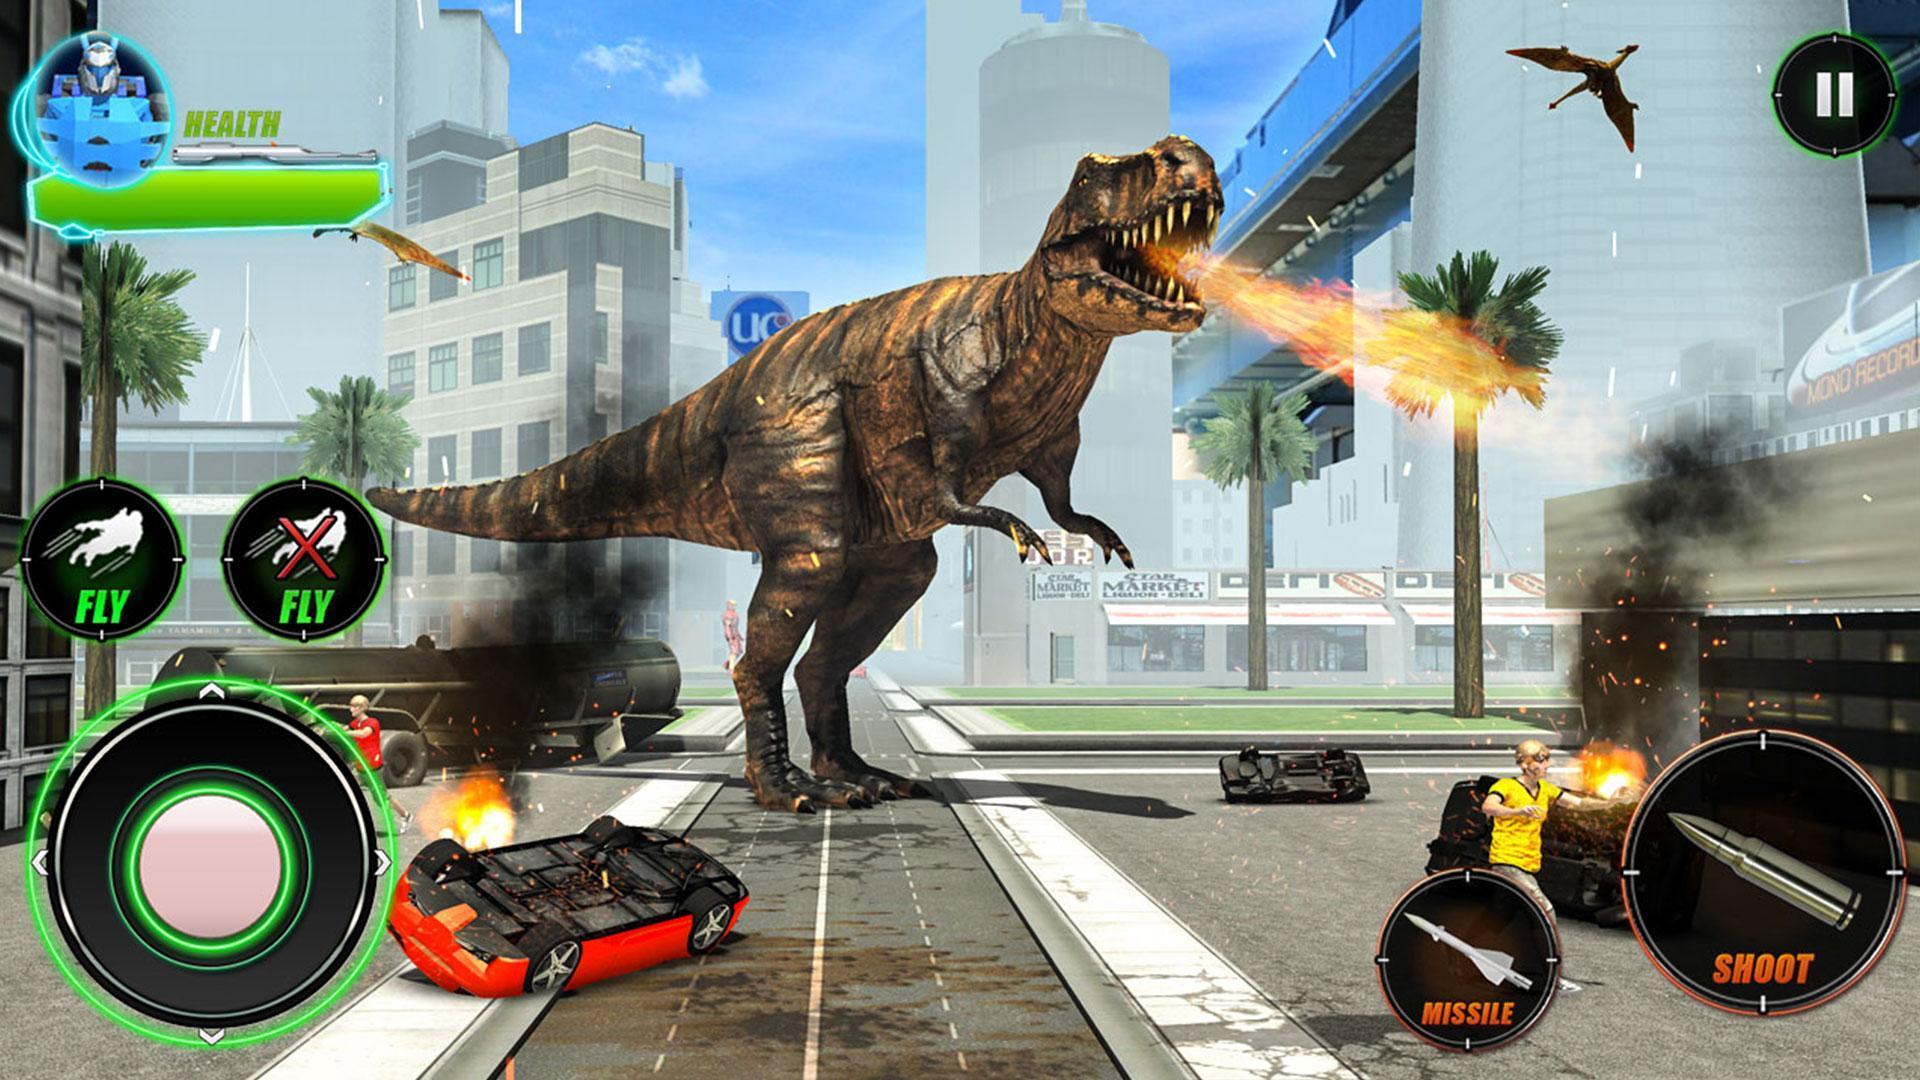 Wild Dinosaur Rampage : Flying Robot Shooting Game 2.3 Screenshot 4